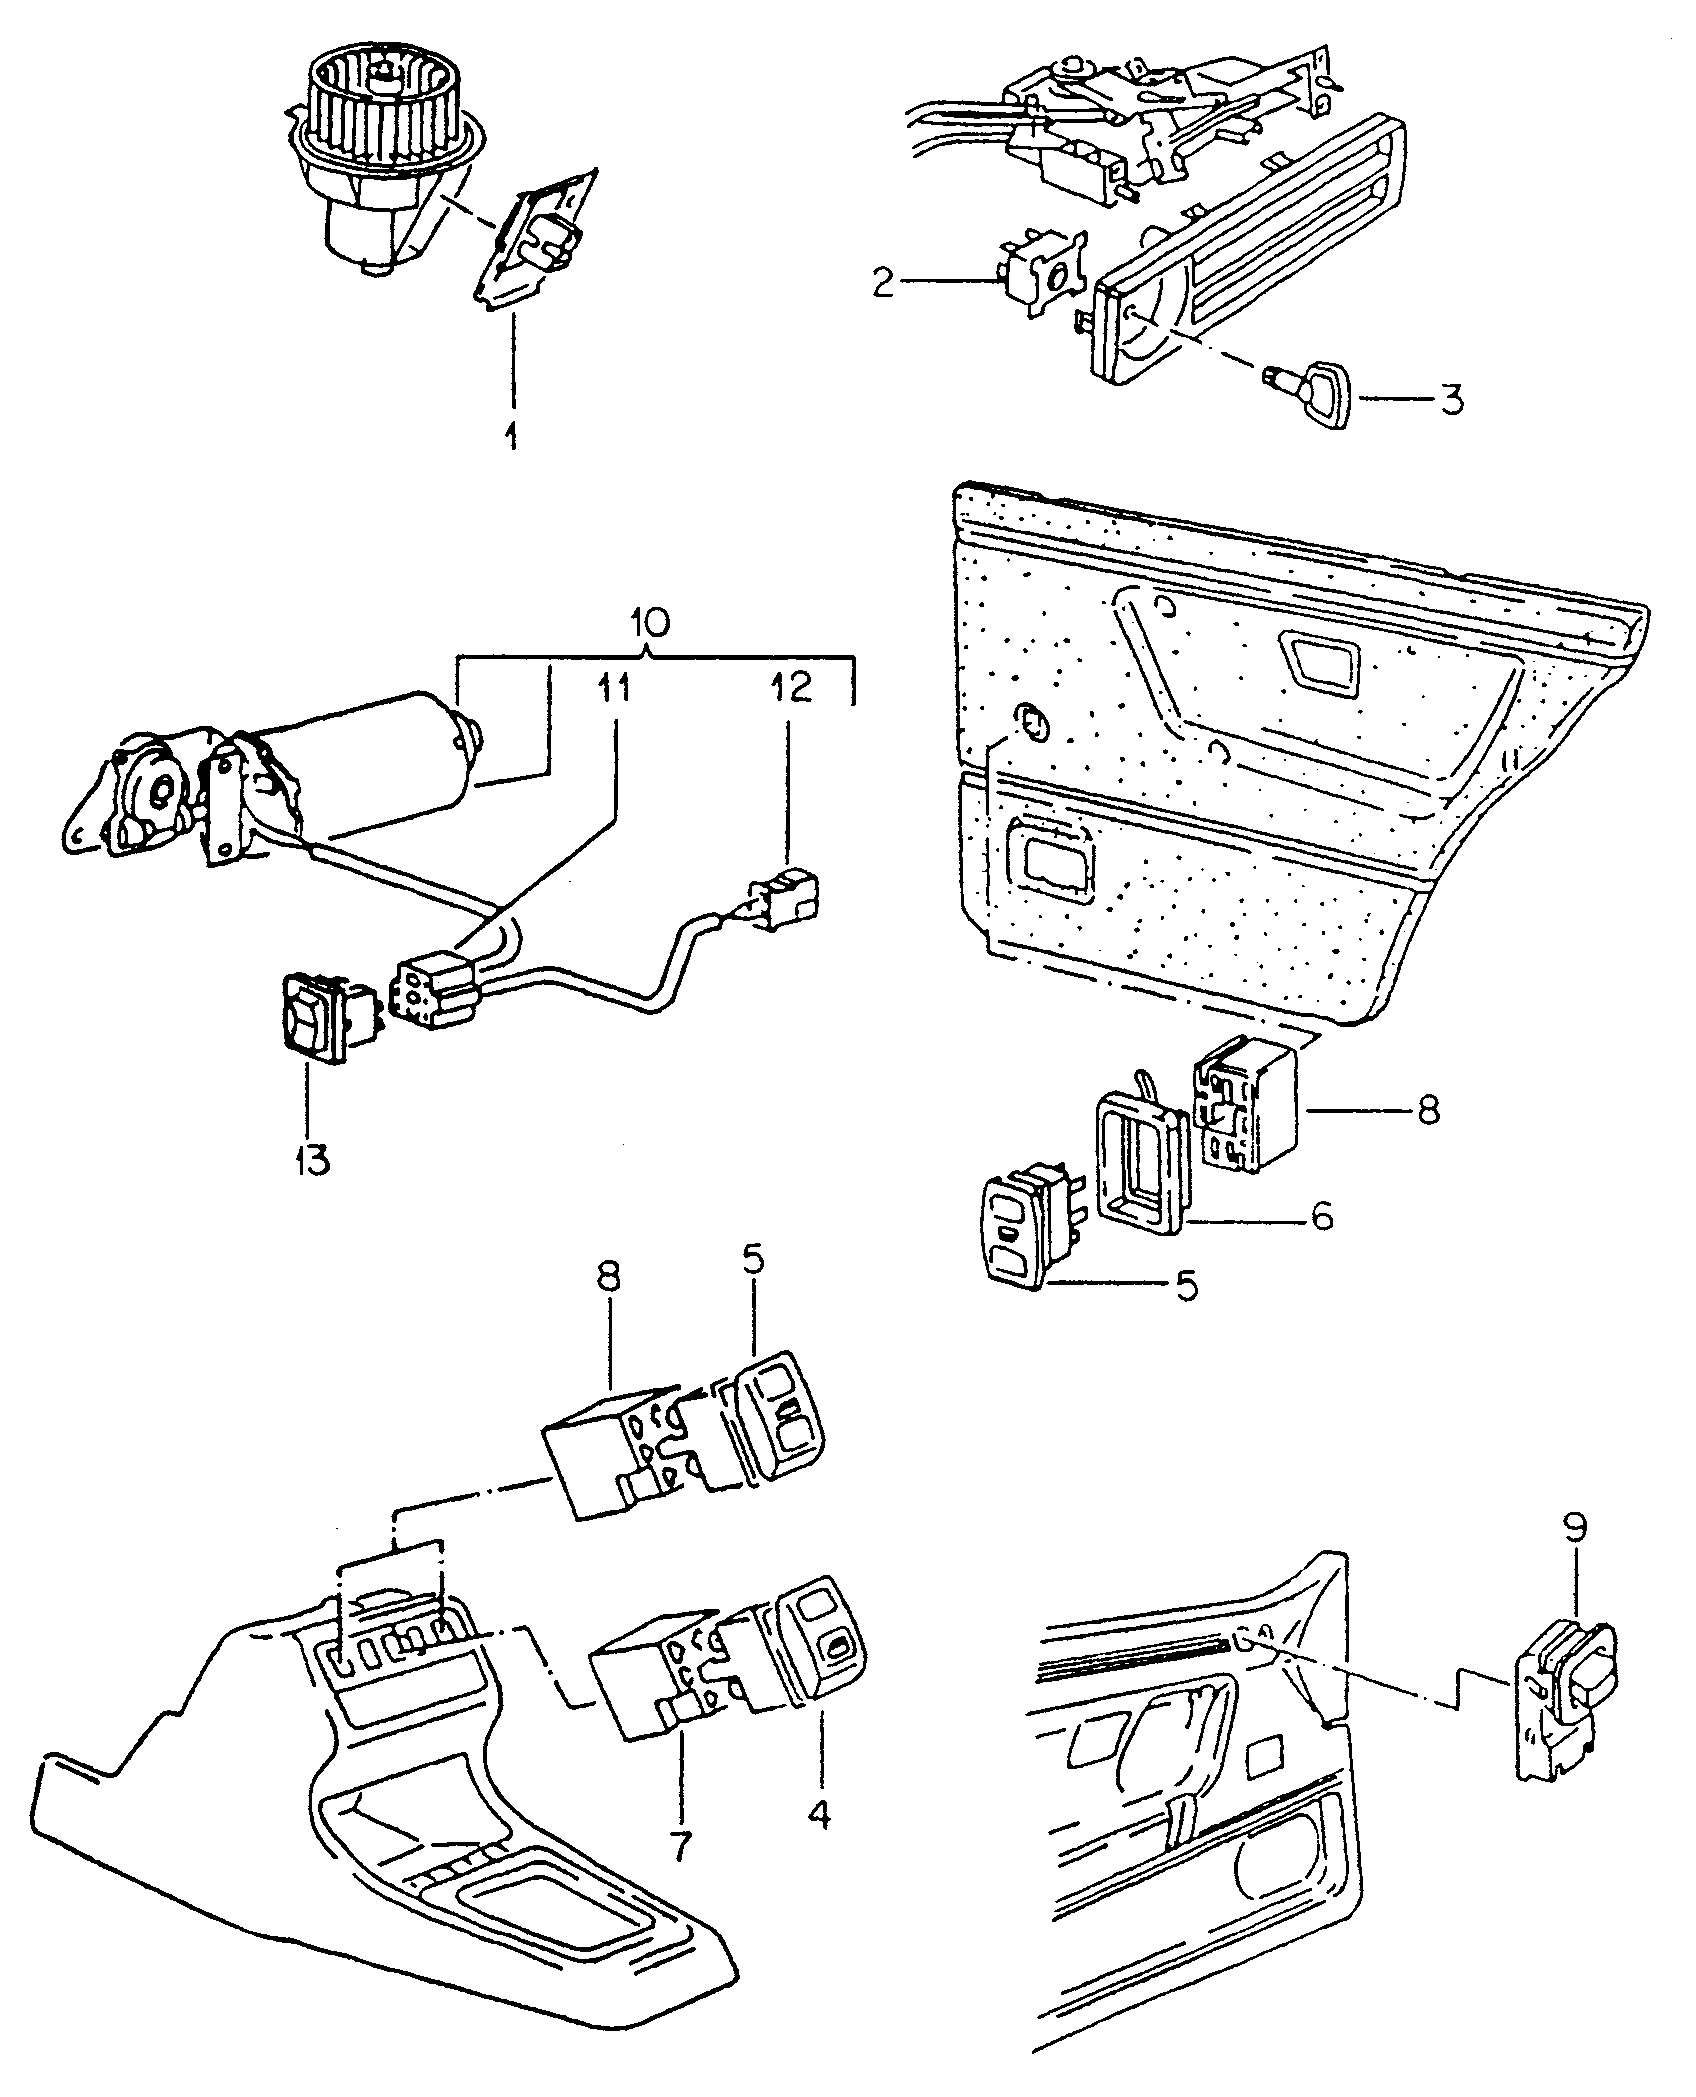 2002 Vw Jetta 18t Engine Diagram